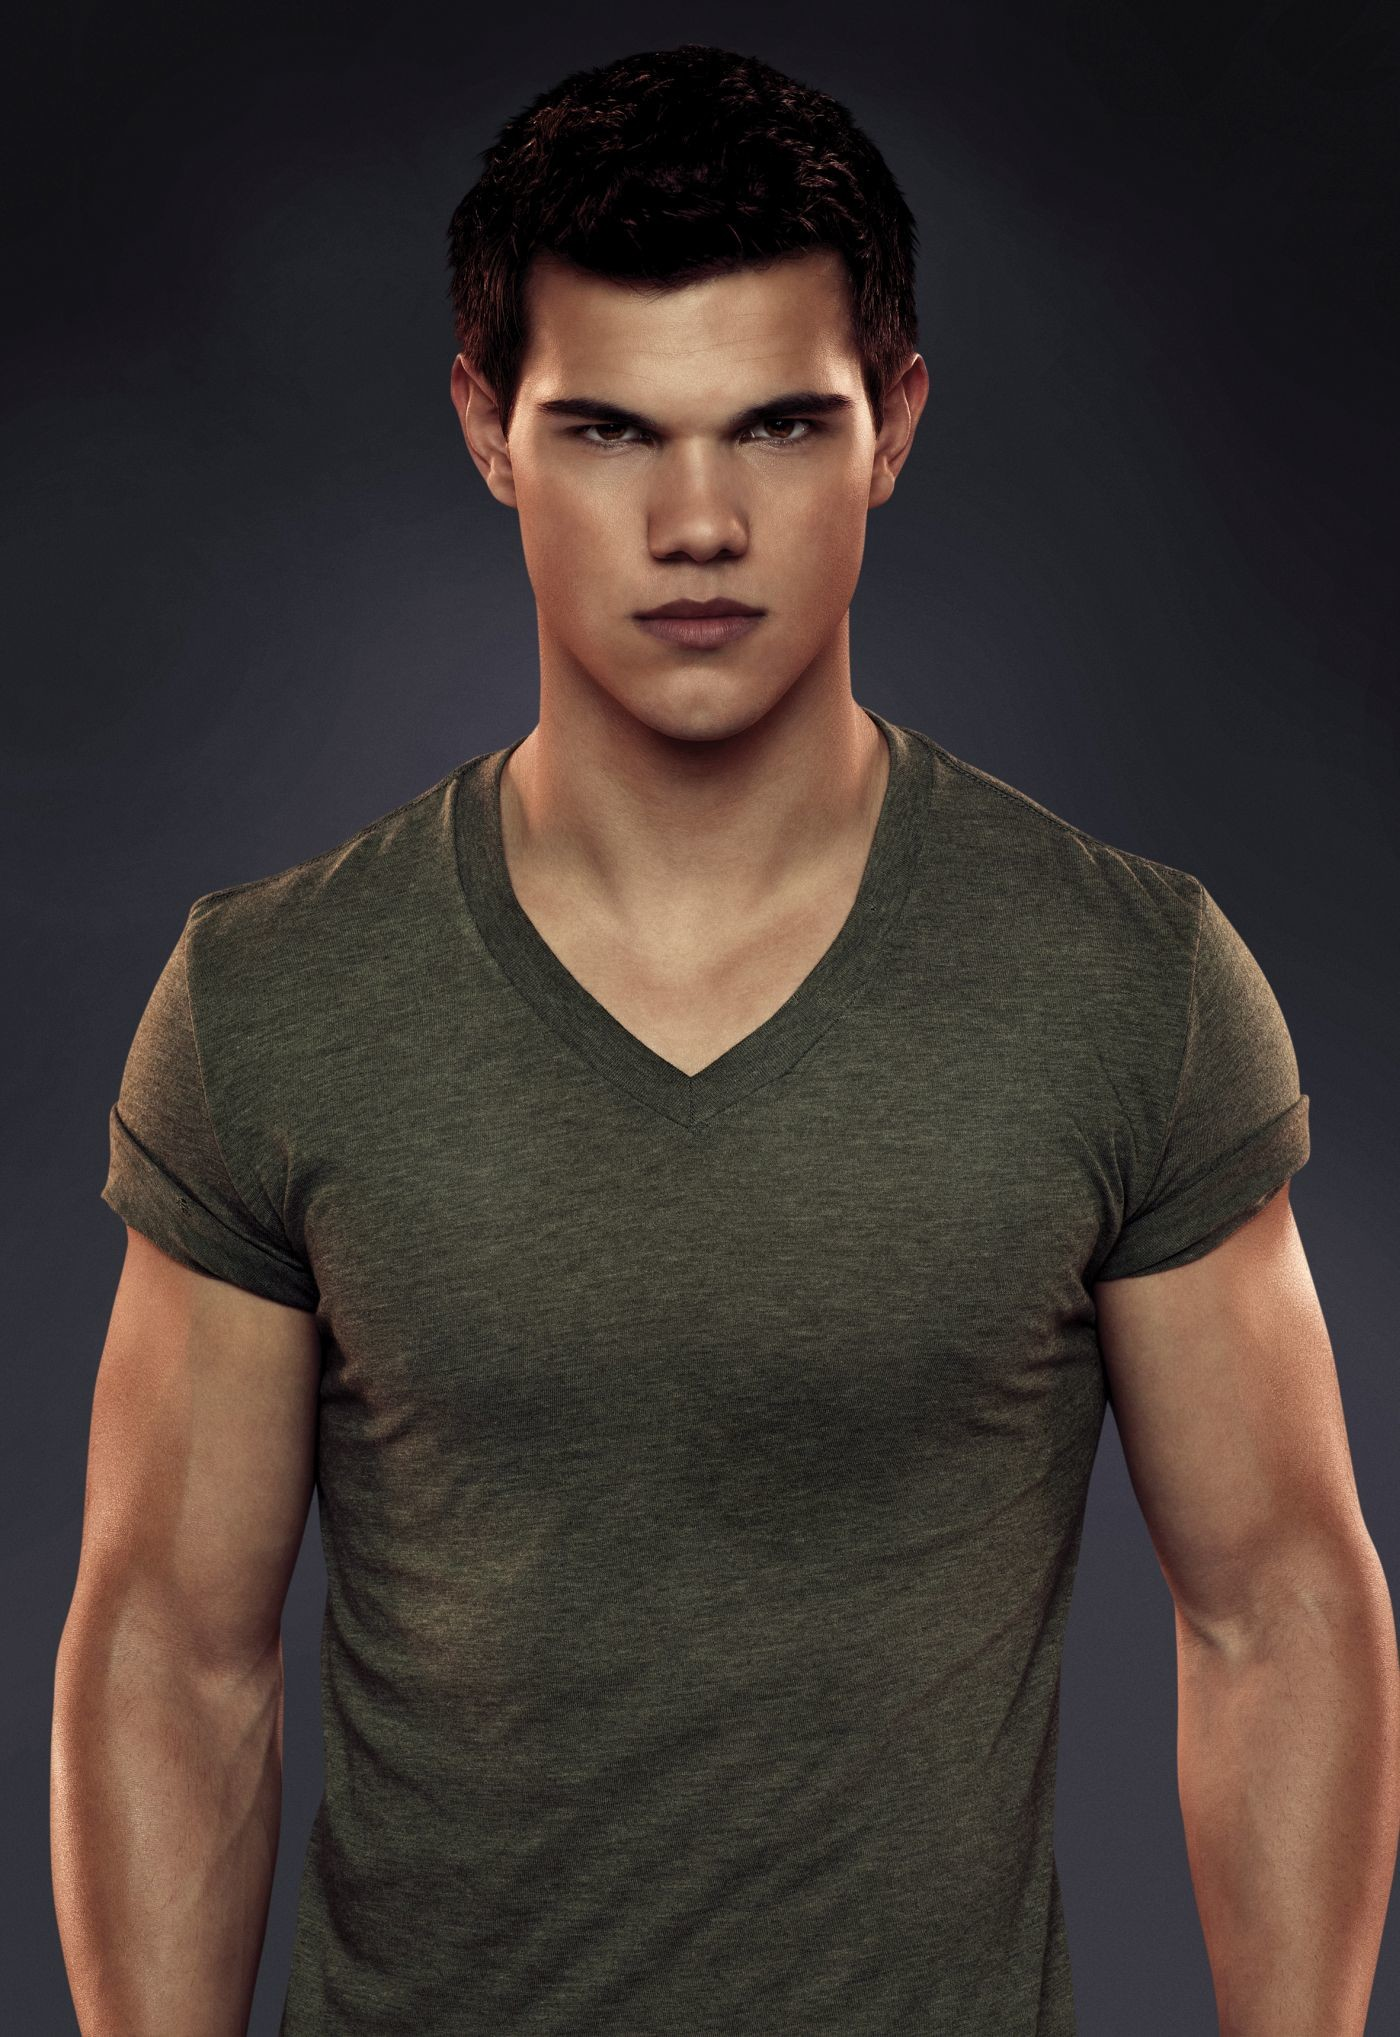 1400x2037 Taylor Lautner Abs | Diet Tips and Fitness Advice